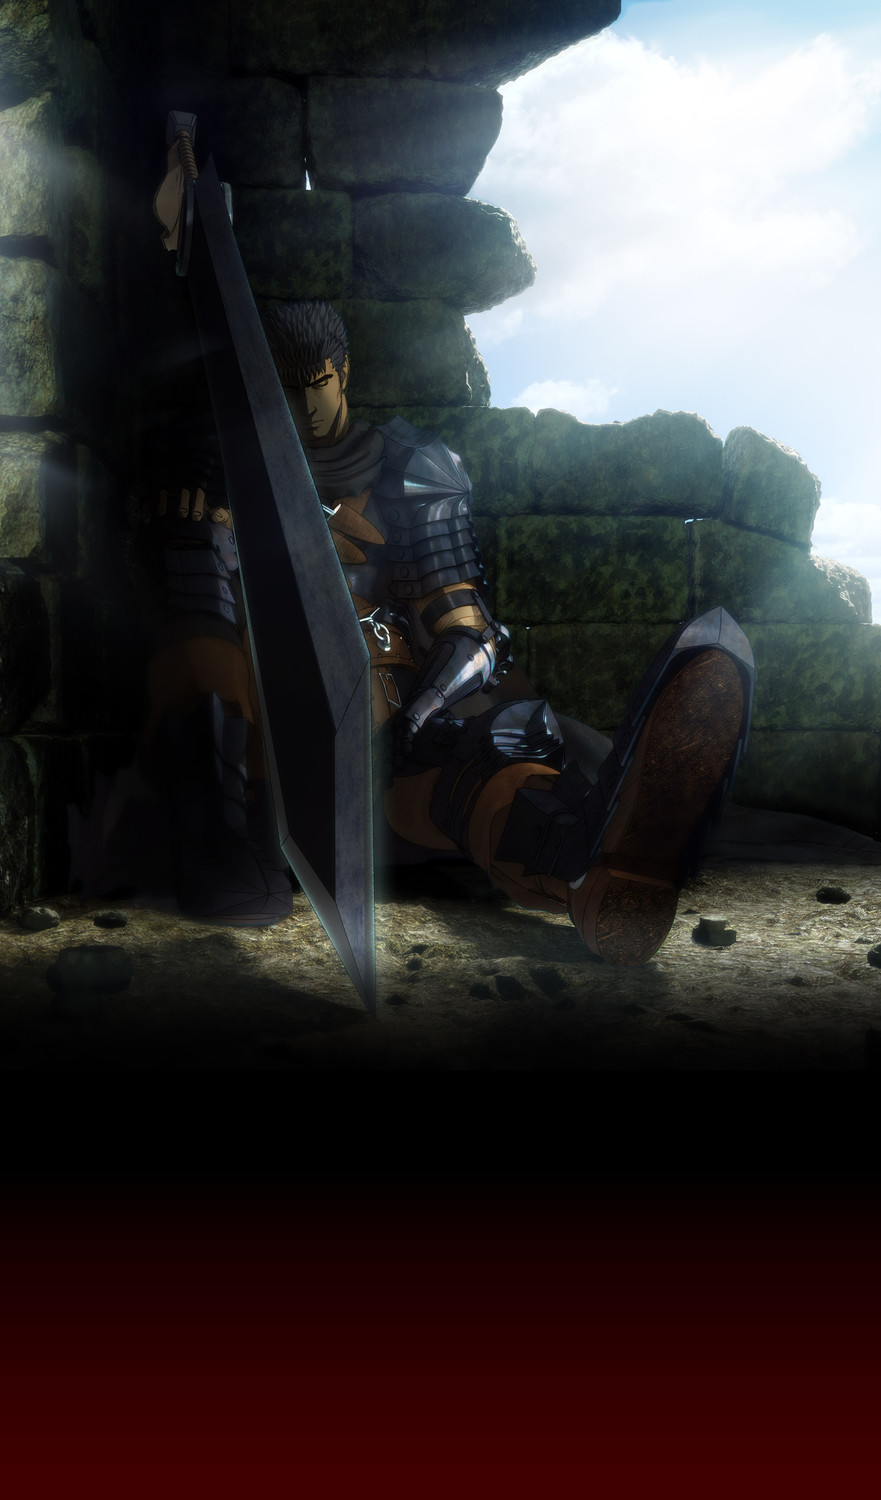 [ANIME] New Berserk anime PV and visual revealed